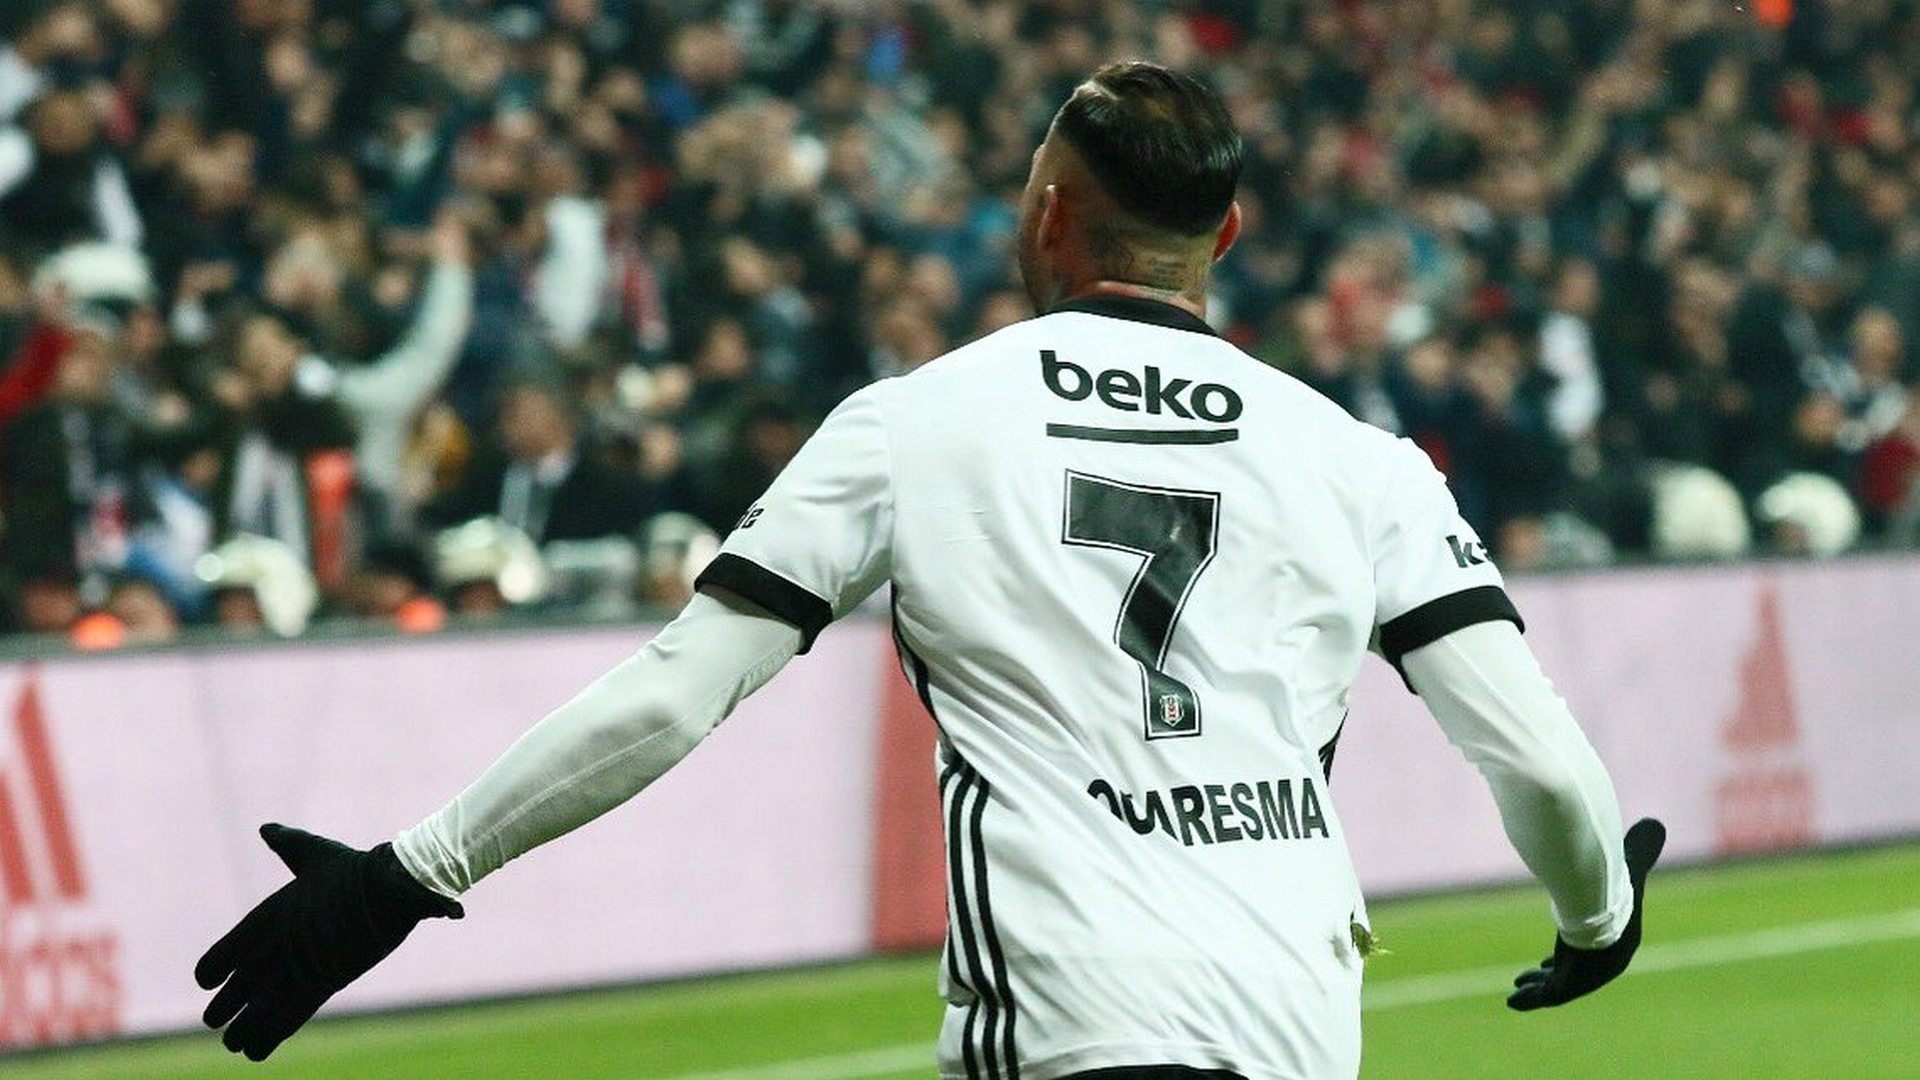 Ricardo Quaresma Besiktas 2252018